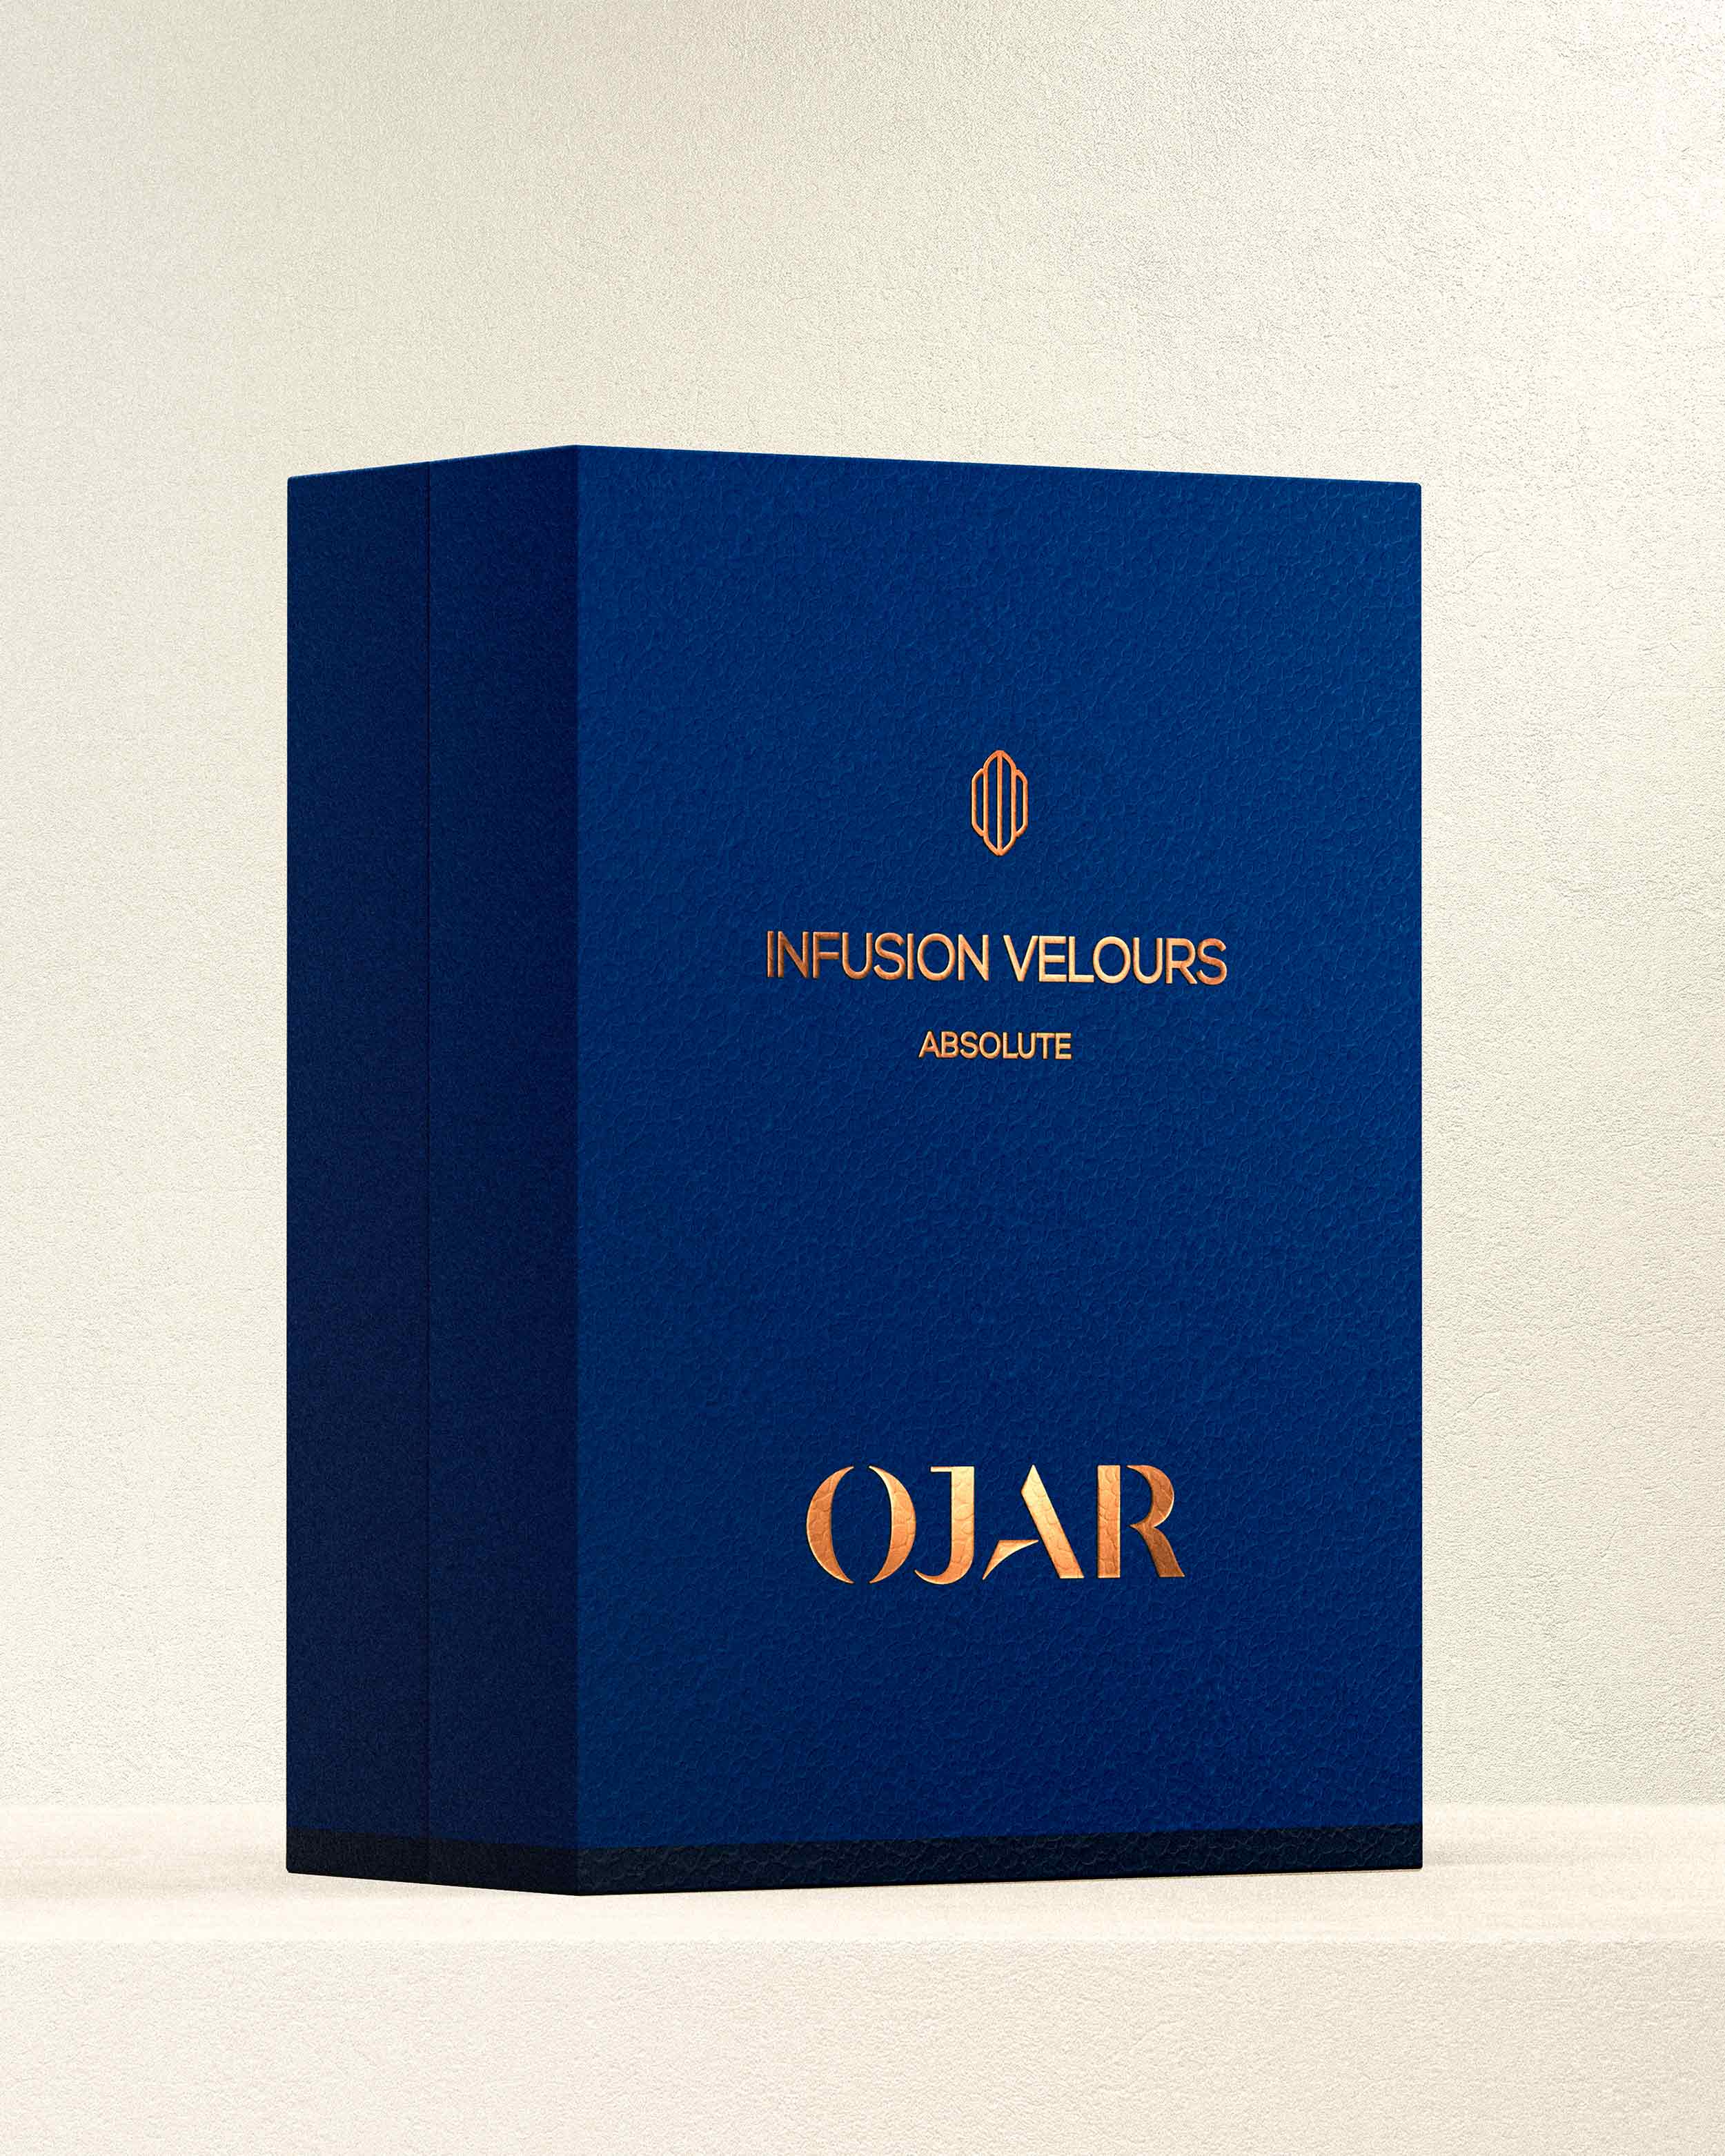 OJAR Absolute Infusion Velours Perfume Pack